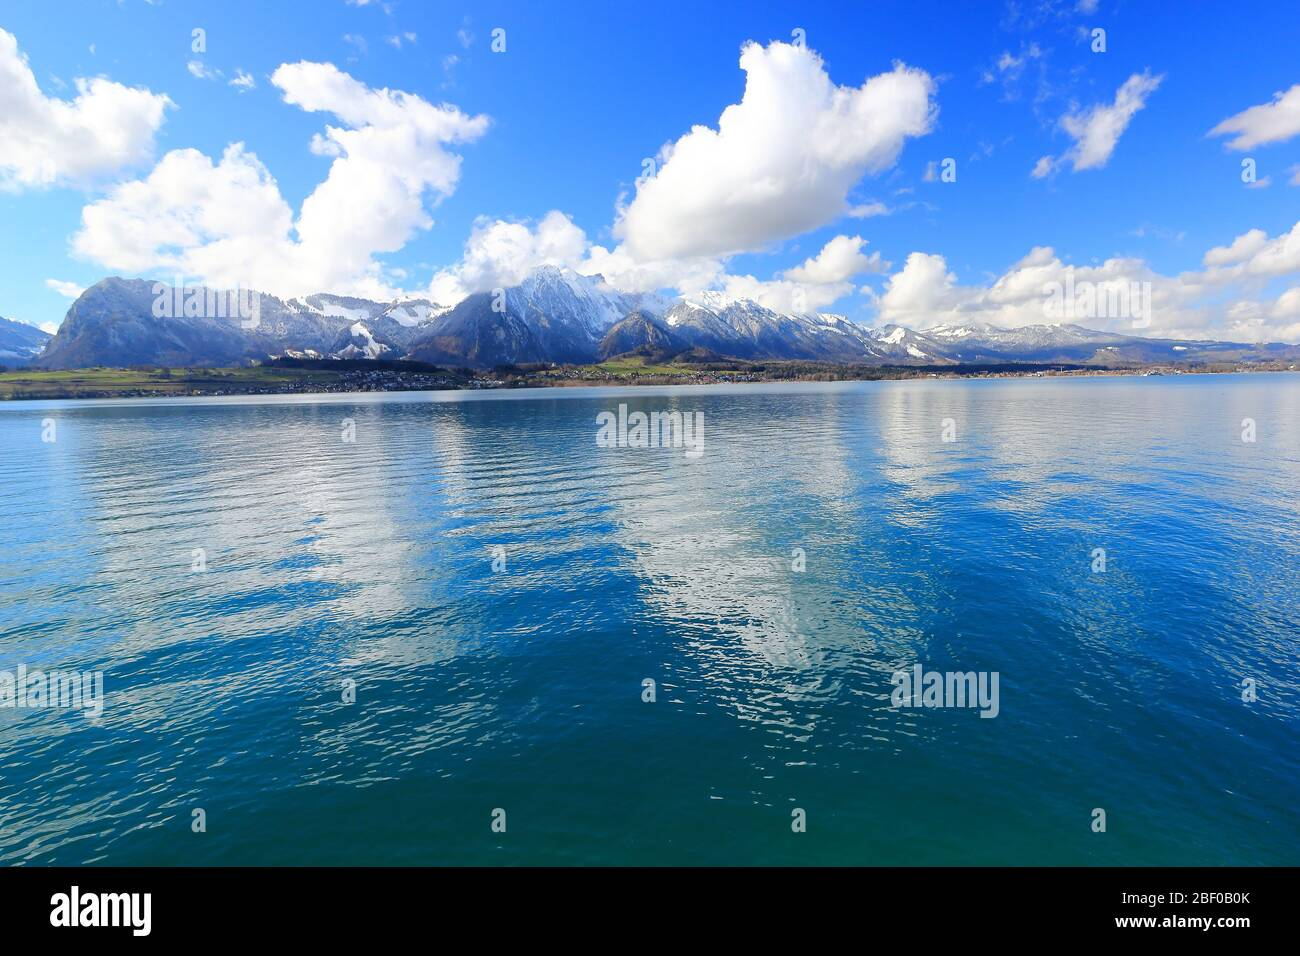 View of Bernese Alps from Oberhofen, located on the northern shore of Lake Thun. Switzerland, Europe. Stock Photo